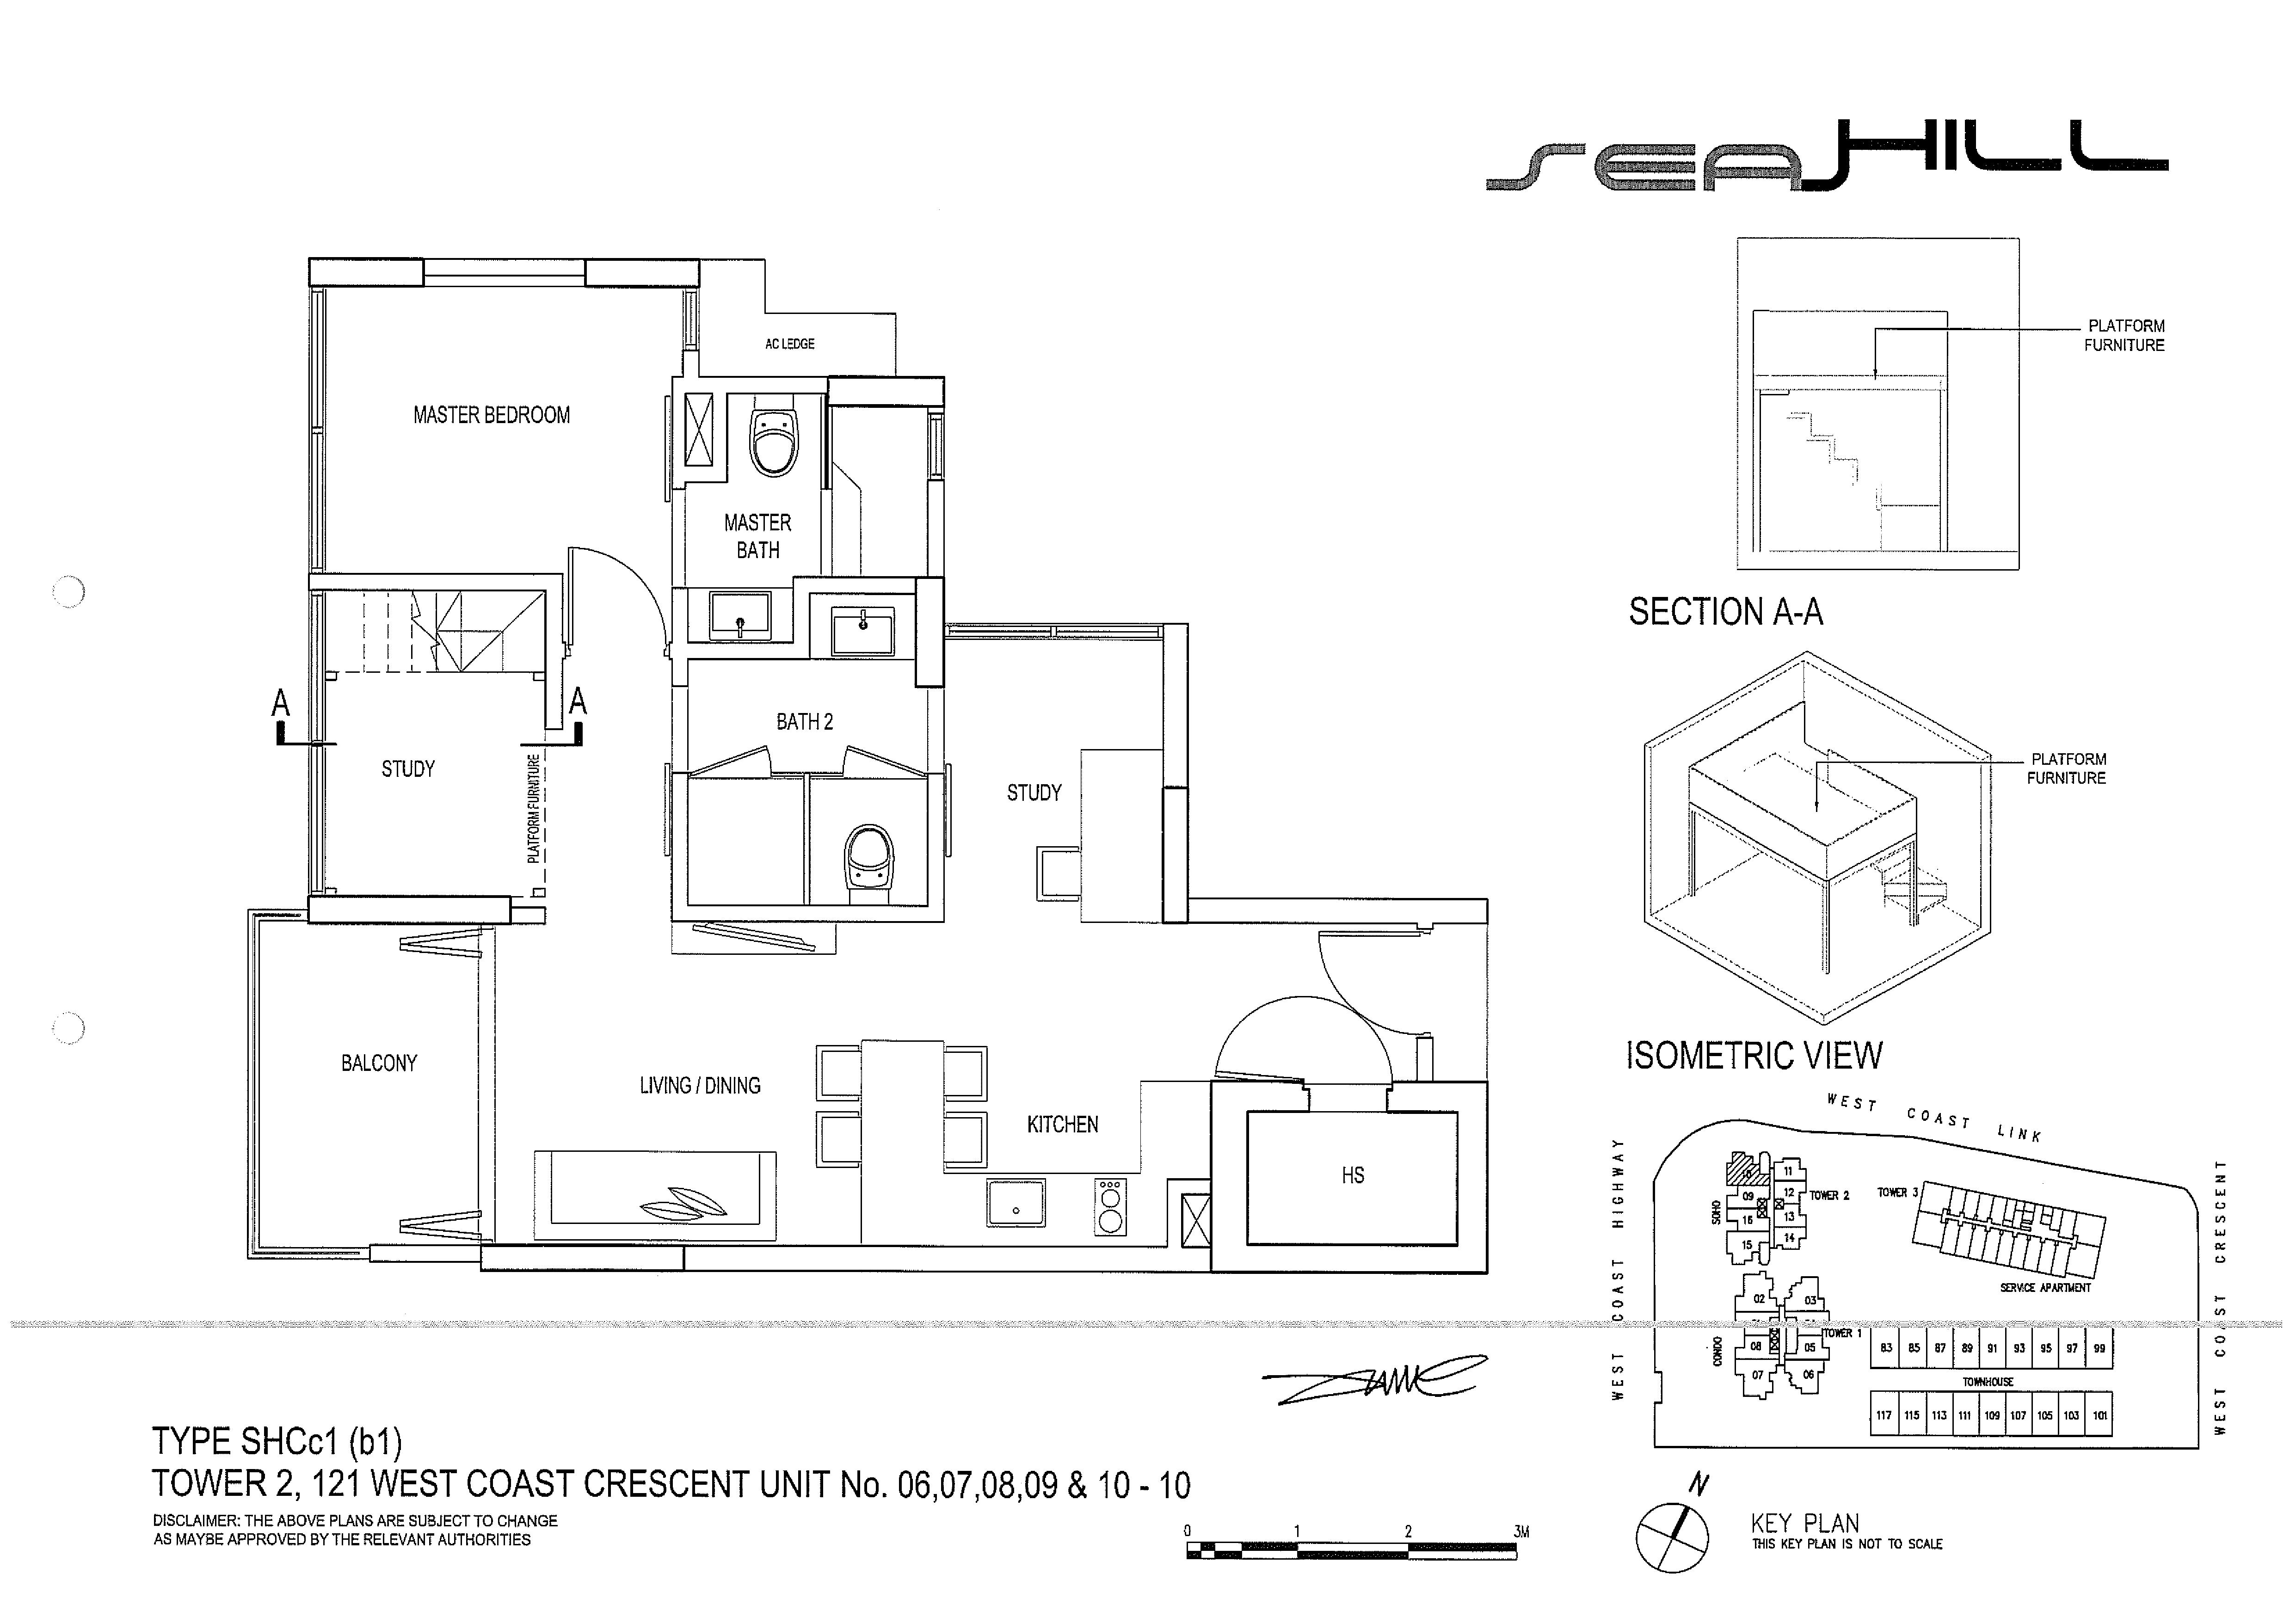 Seahill 2 Bedroom + Study Soho Type SHCc1(p1) Unit 06/07/08/09/10-10 Floor Plans